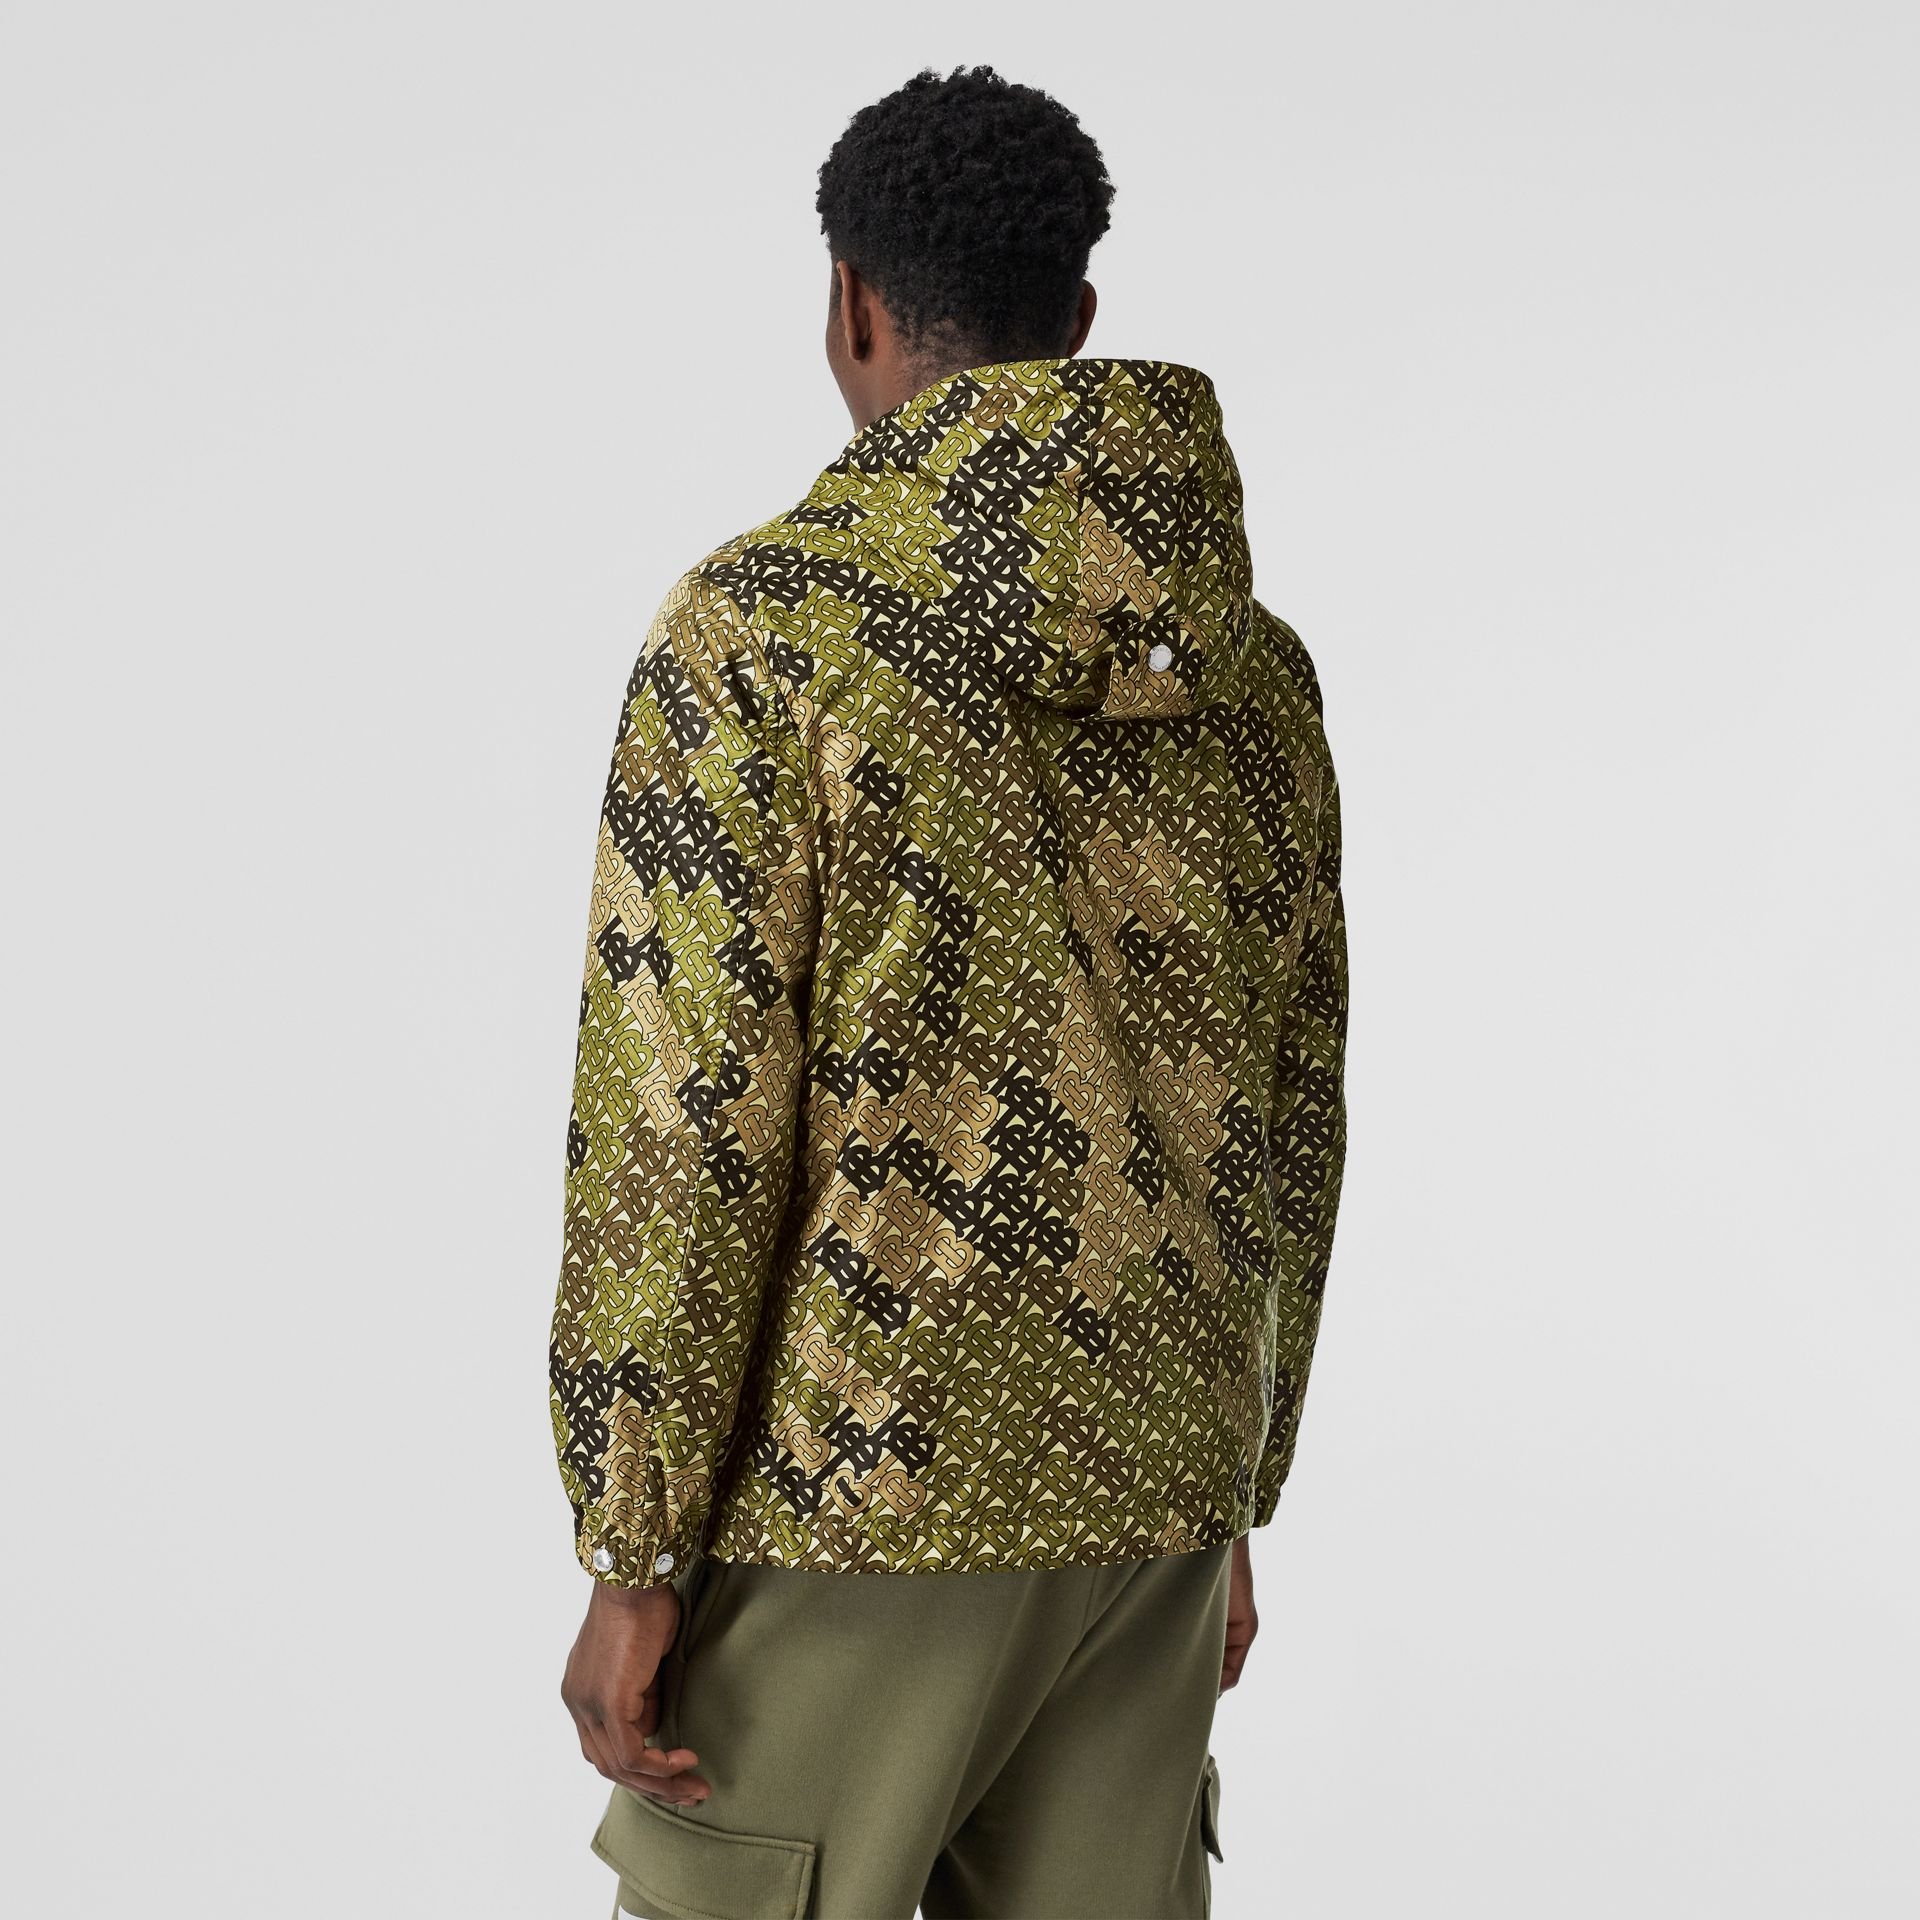 Monogram Print Nylon Hooded Jacket in Khaki Green - Men | Burberry - gallery image 2